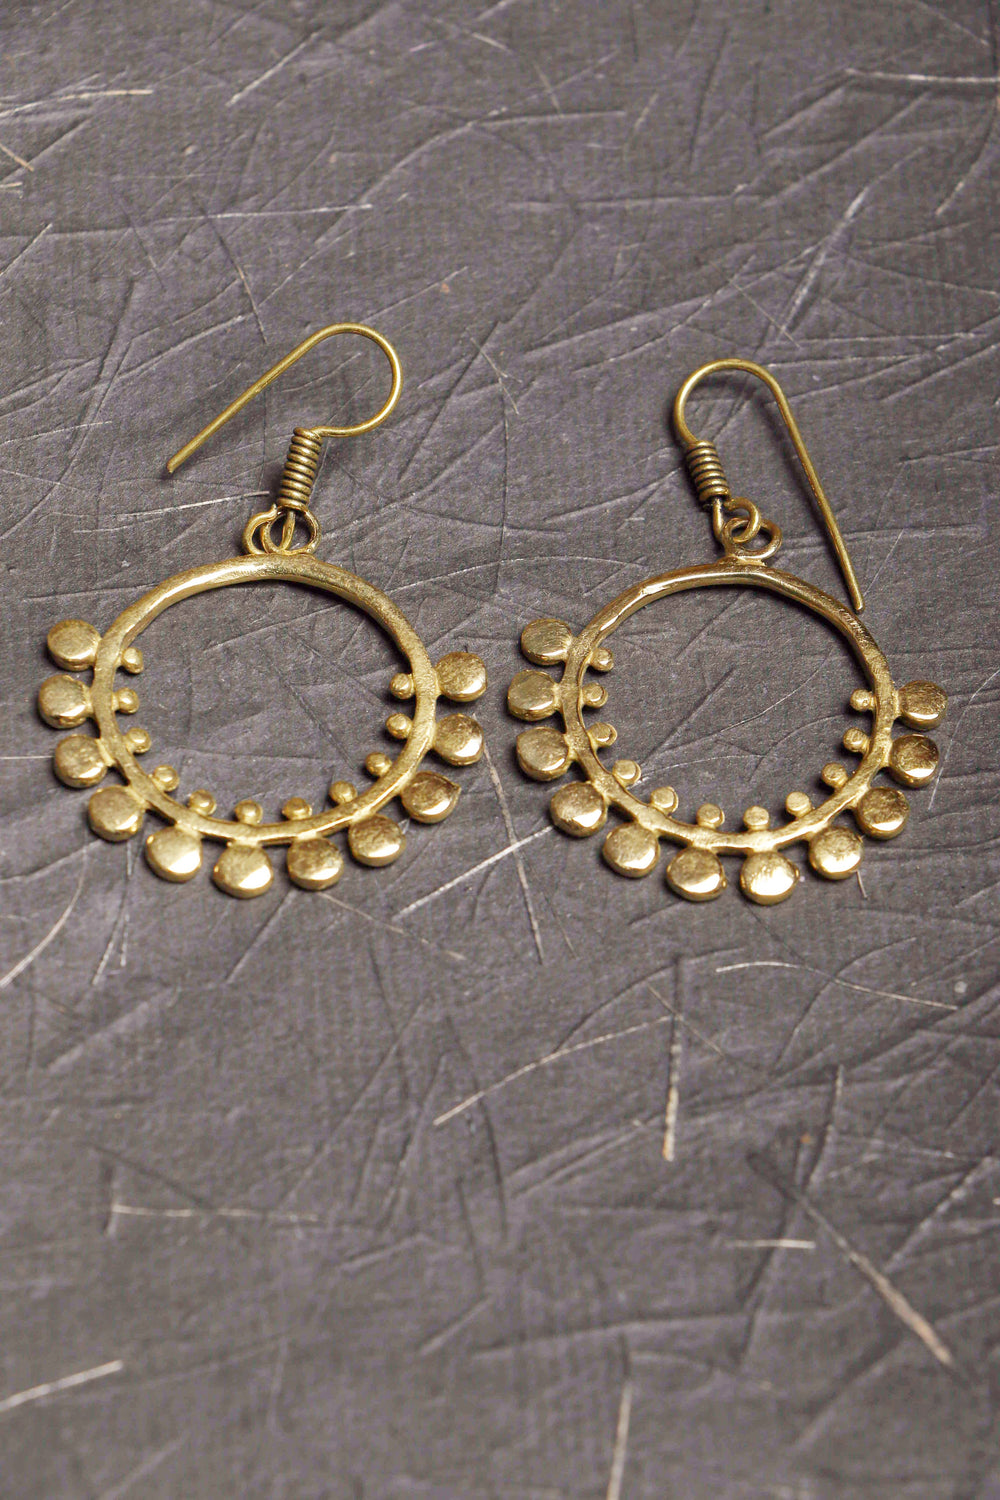 Pittalam series Bindi I handmade brass earrings